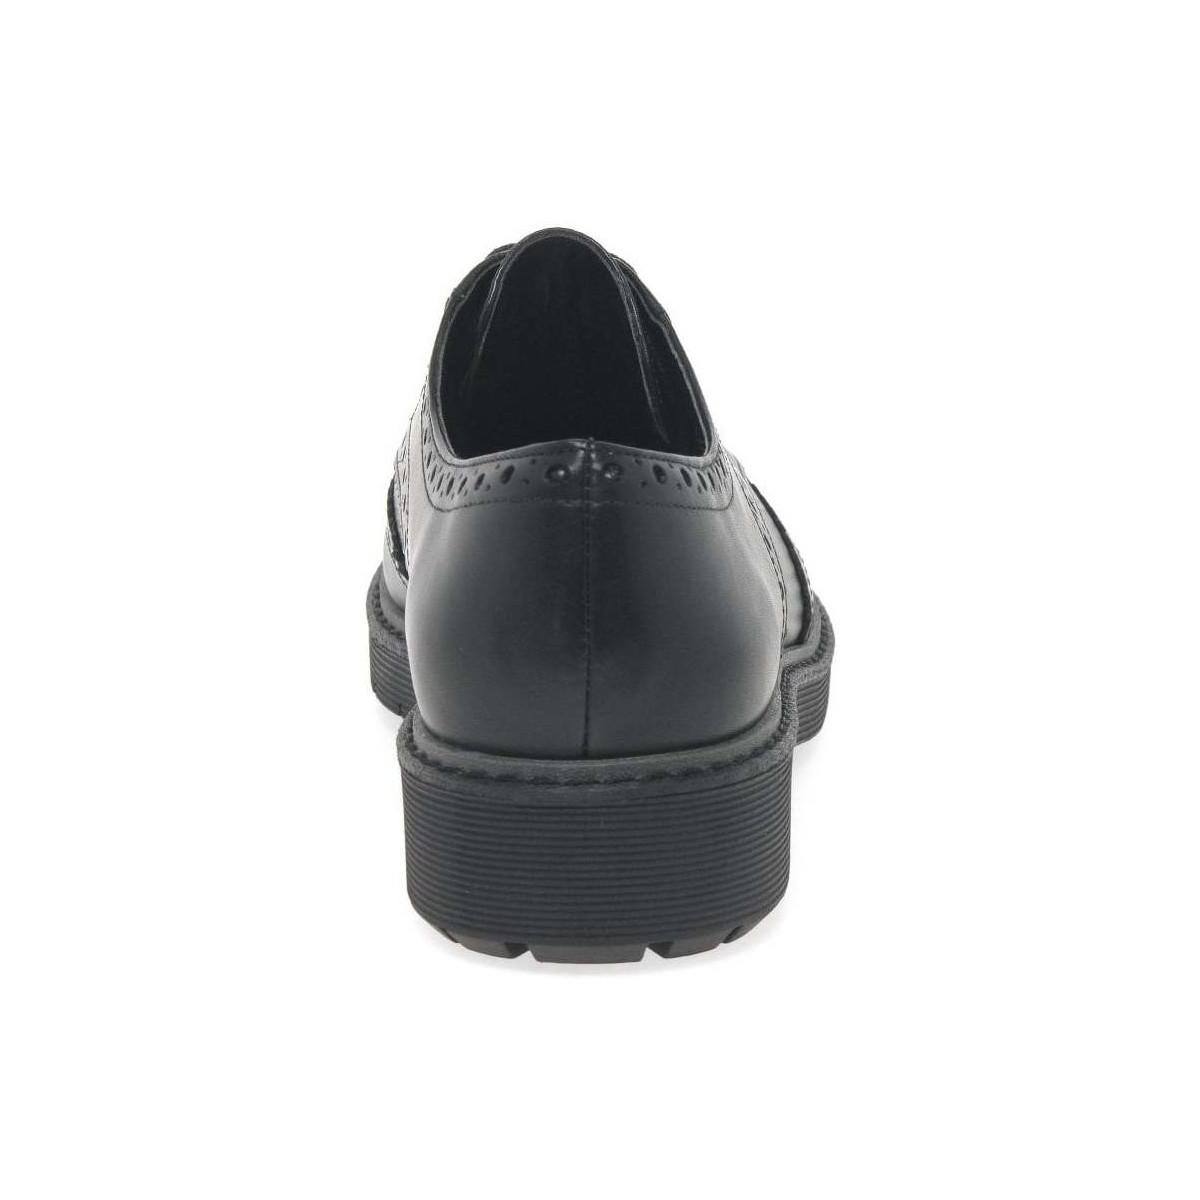 eaf88012bd5c Clarks - Black Alexa Darcy Womens Lace Up Wing Tip Brogues - Lyst. View  fullscreen